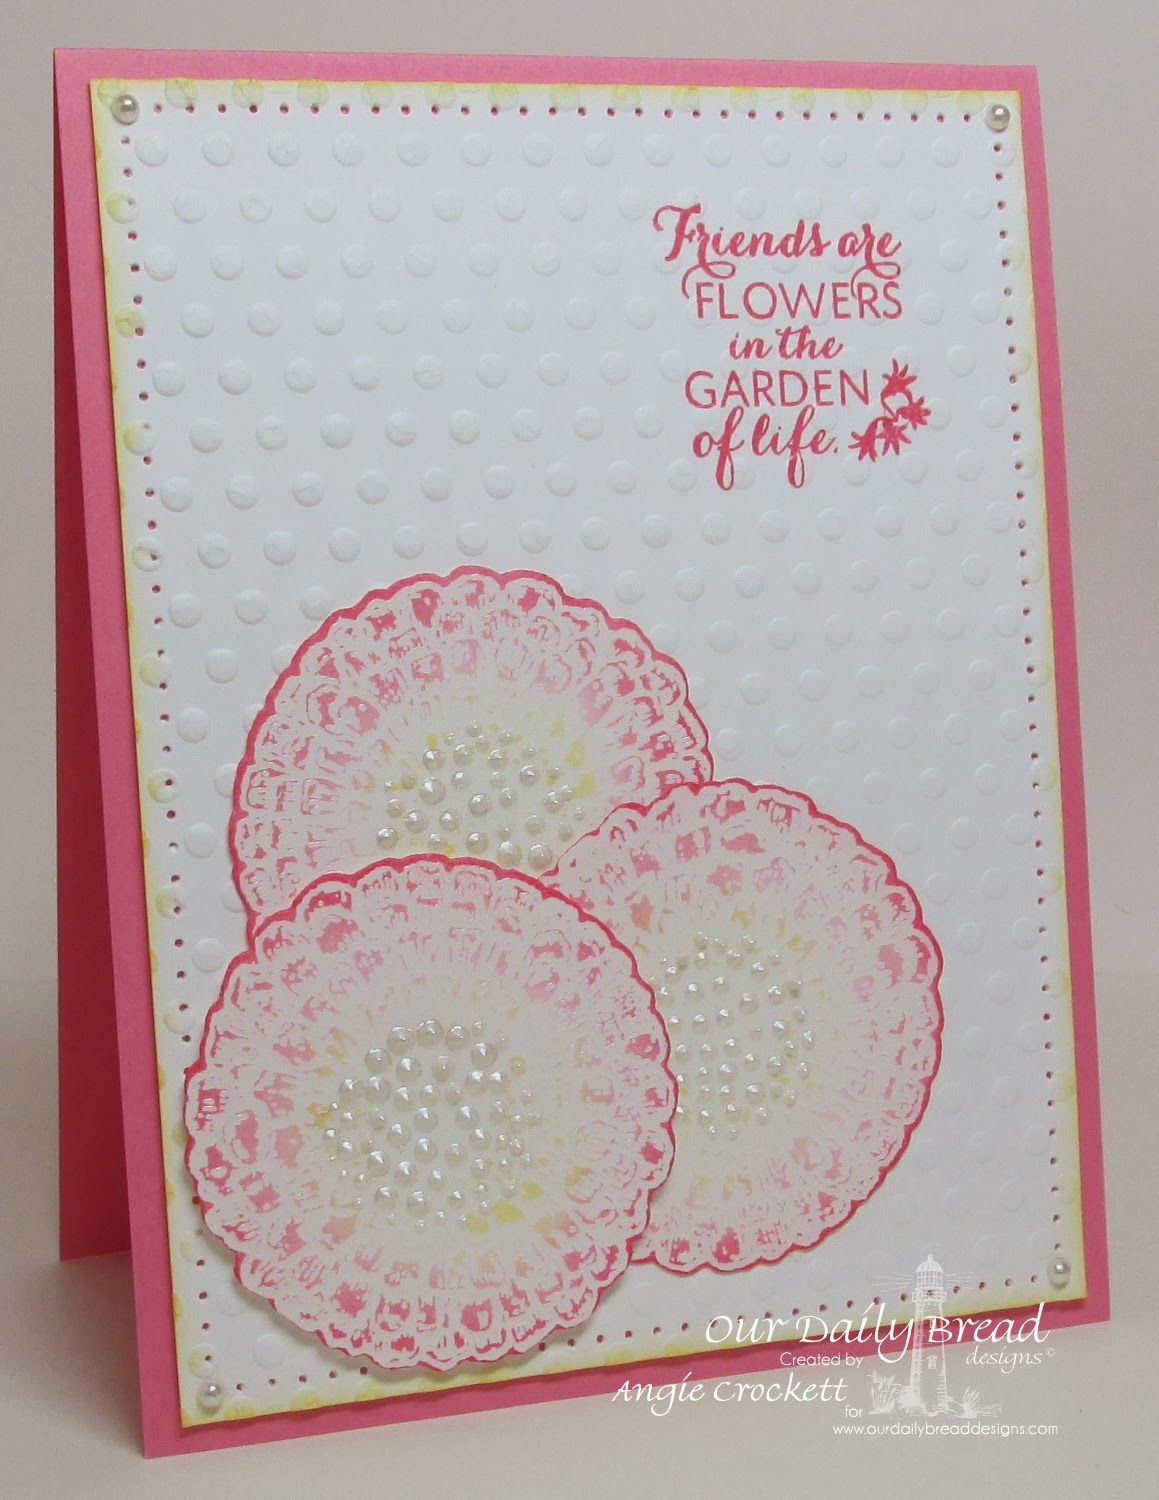 ODBD Zinnia, ODBD Custom Zinnia and Leaves Die Set, Card Designer Angie Crockett